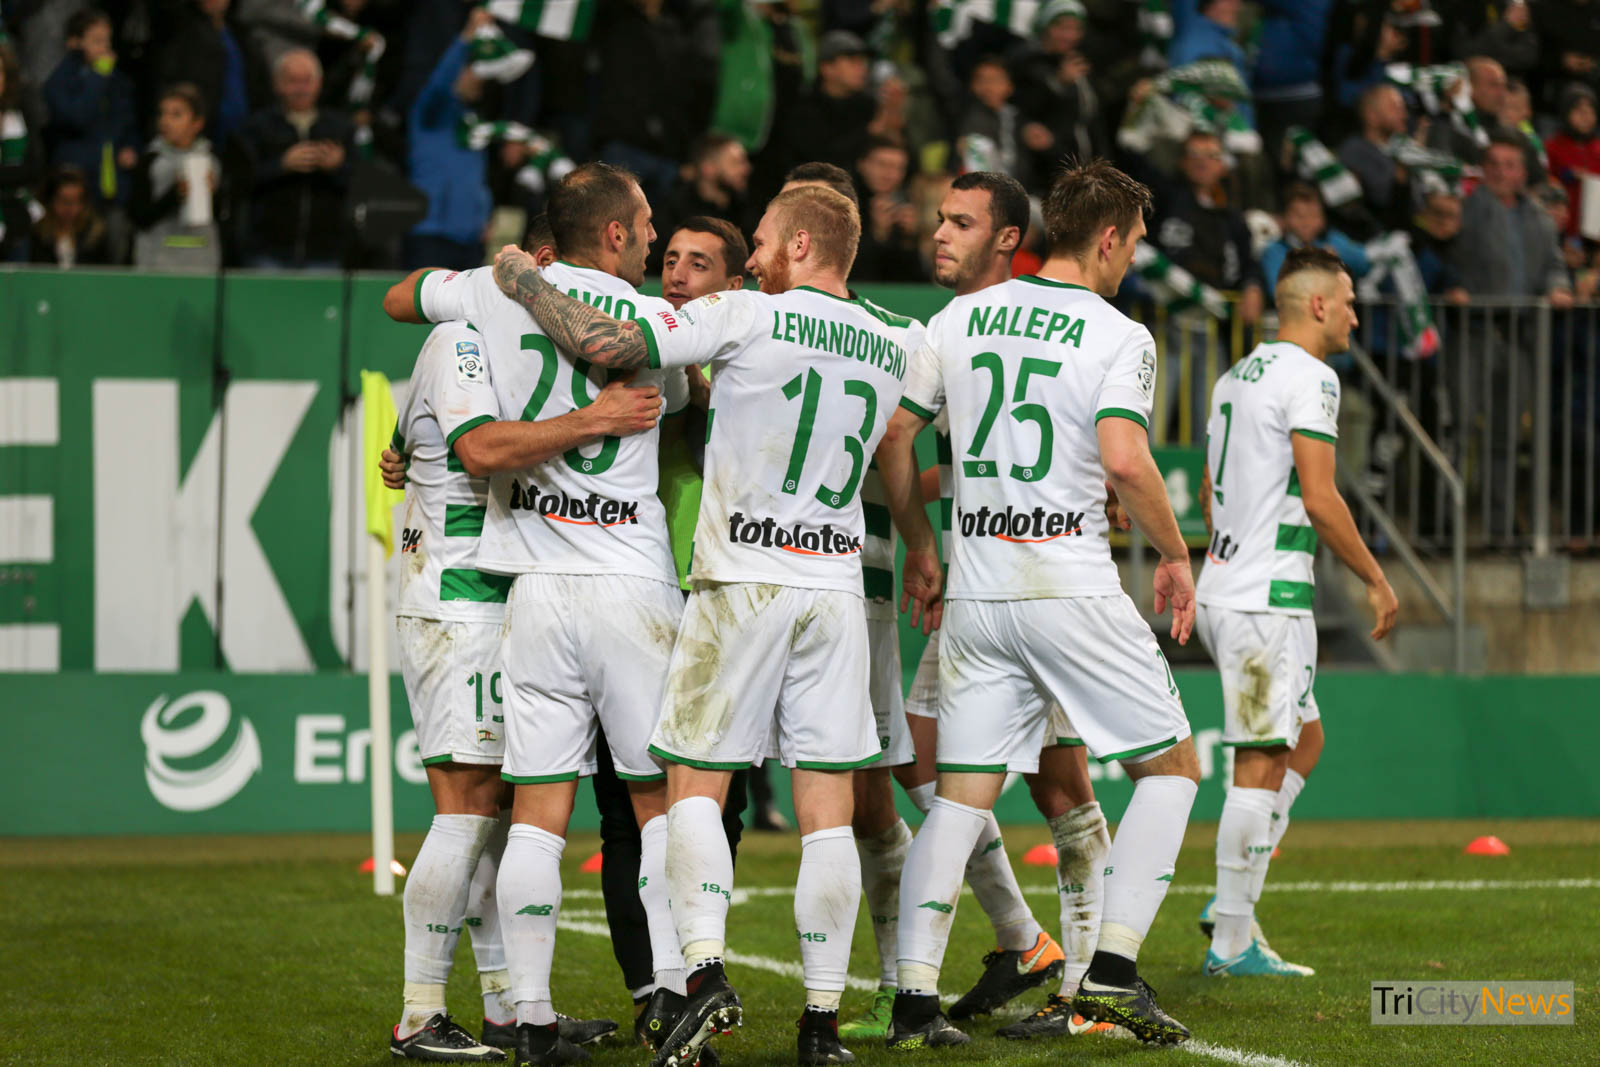 Lechia Gdansk, Photo: Luca Aliano/Tricity News